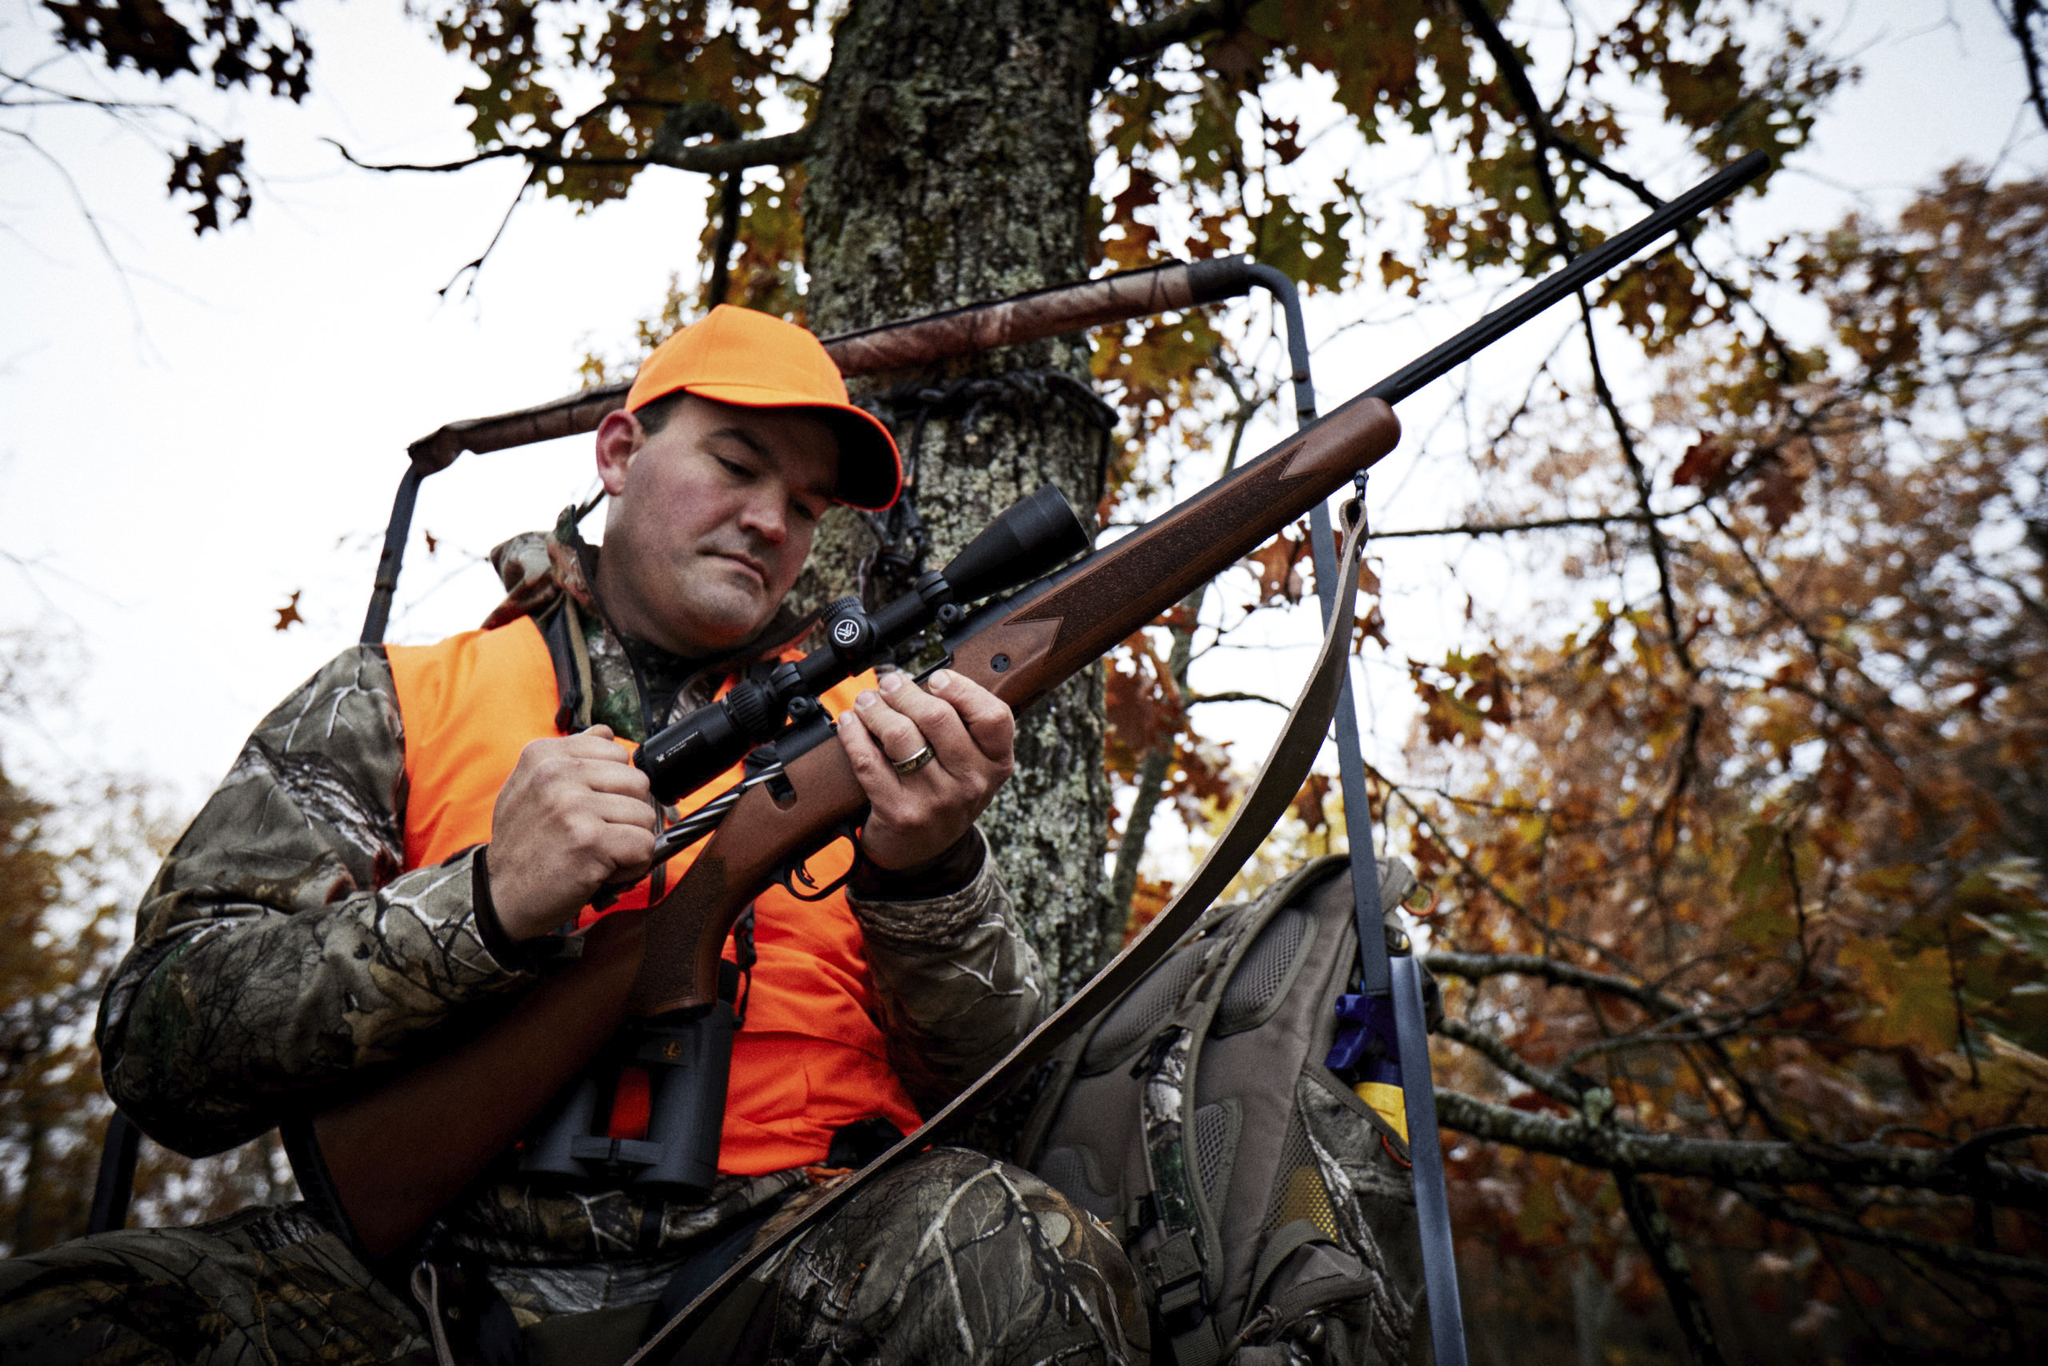 So You Need a New Hunting Rifle